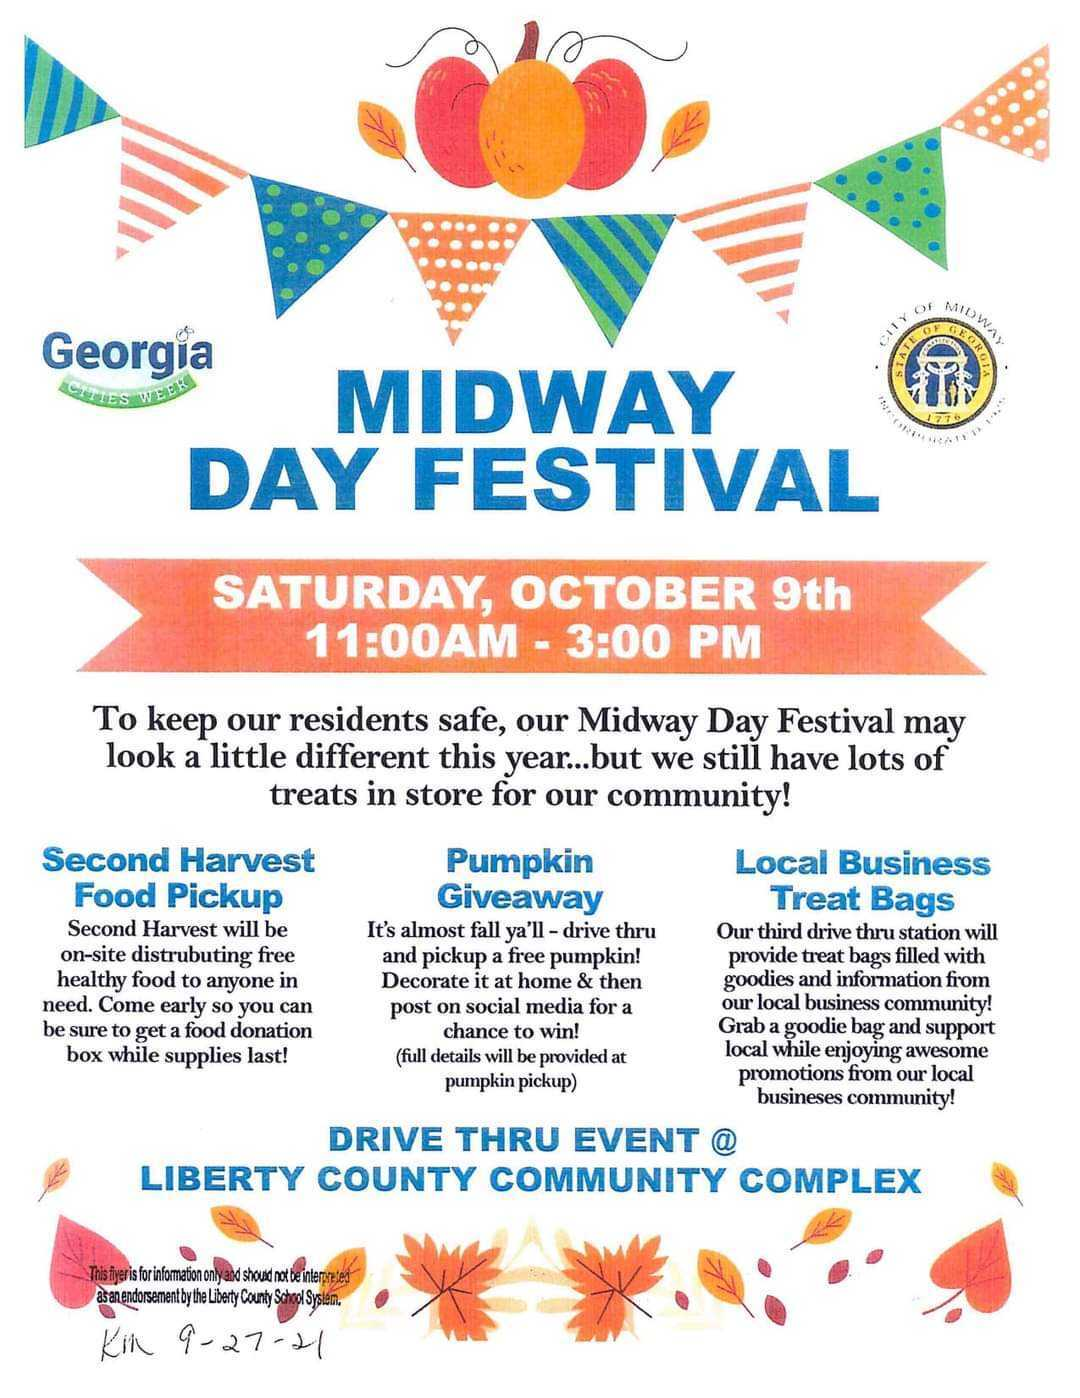 Midway Day Festival